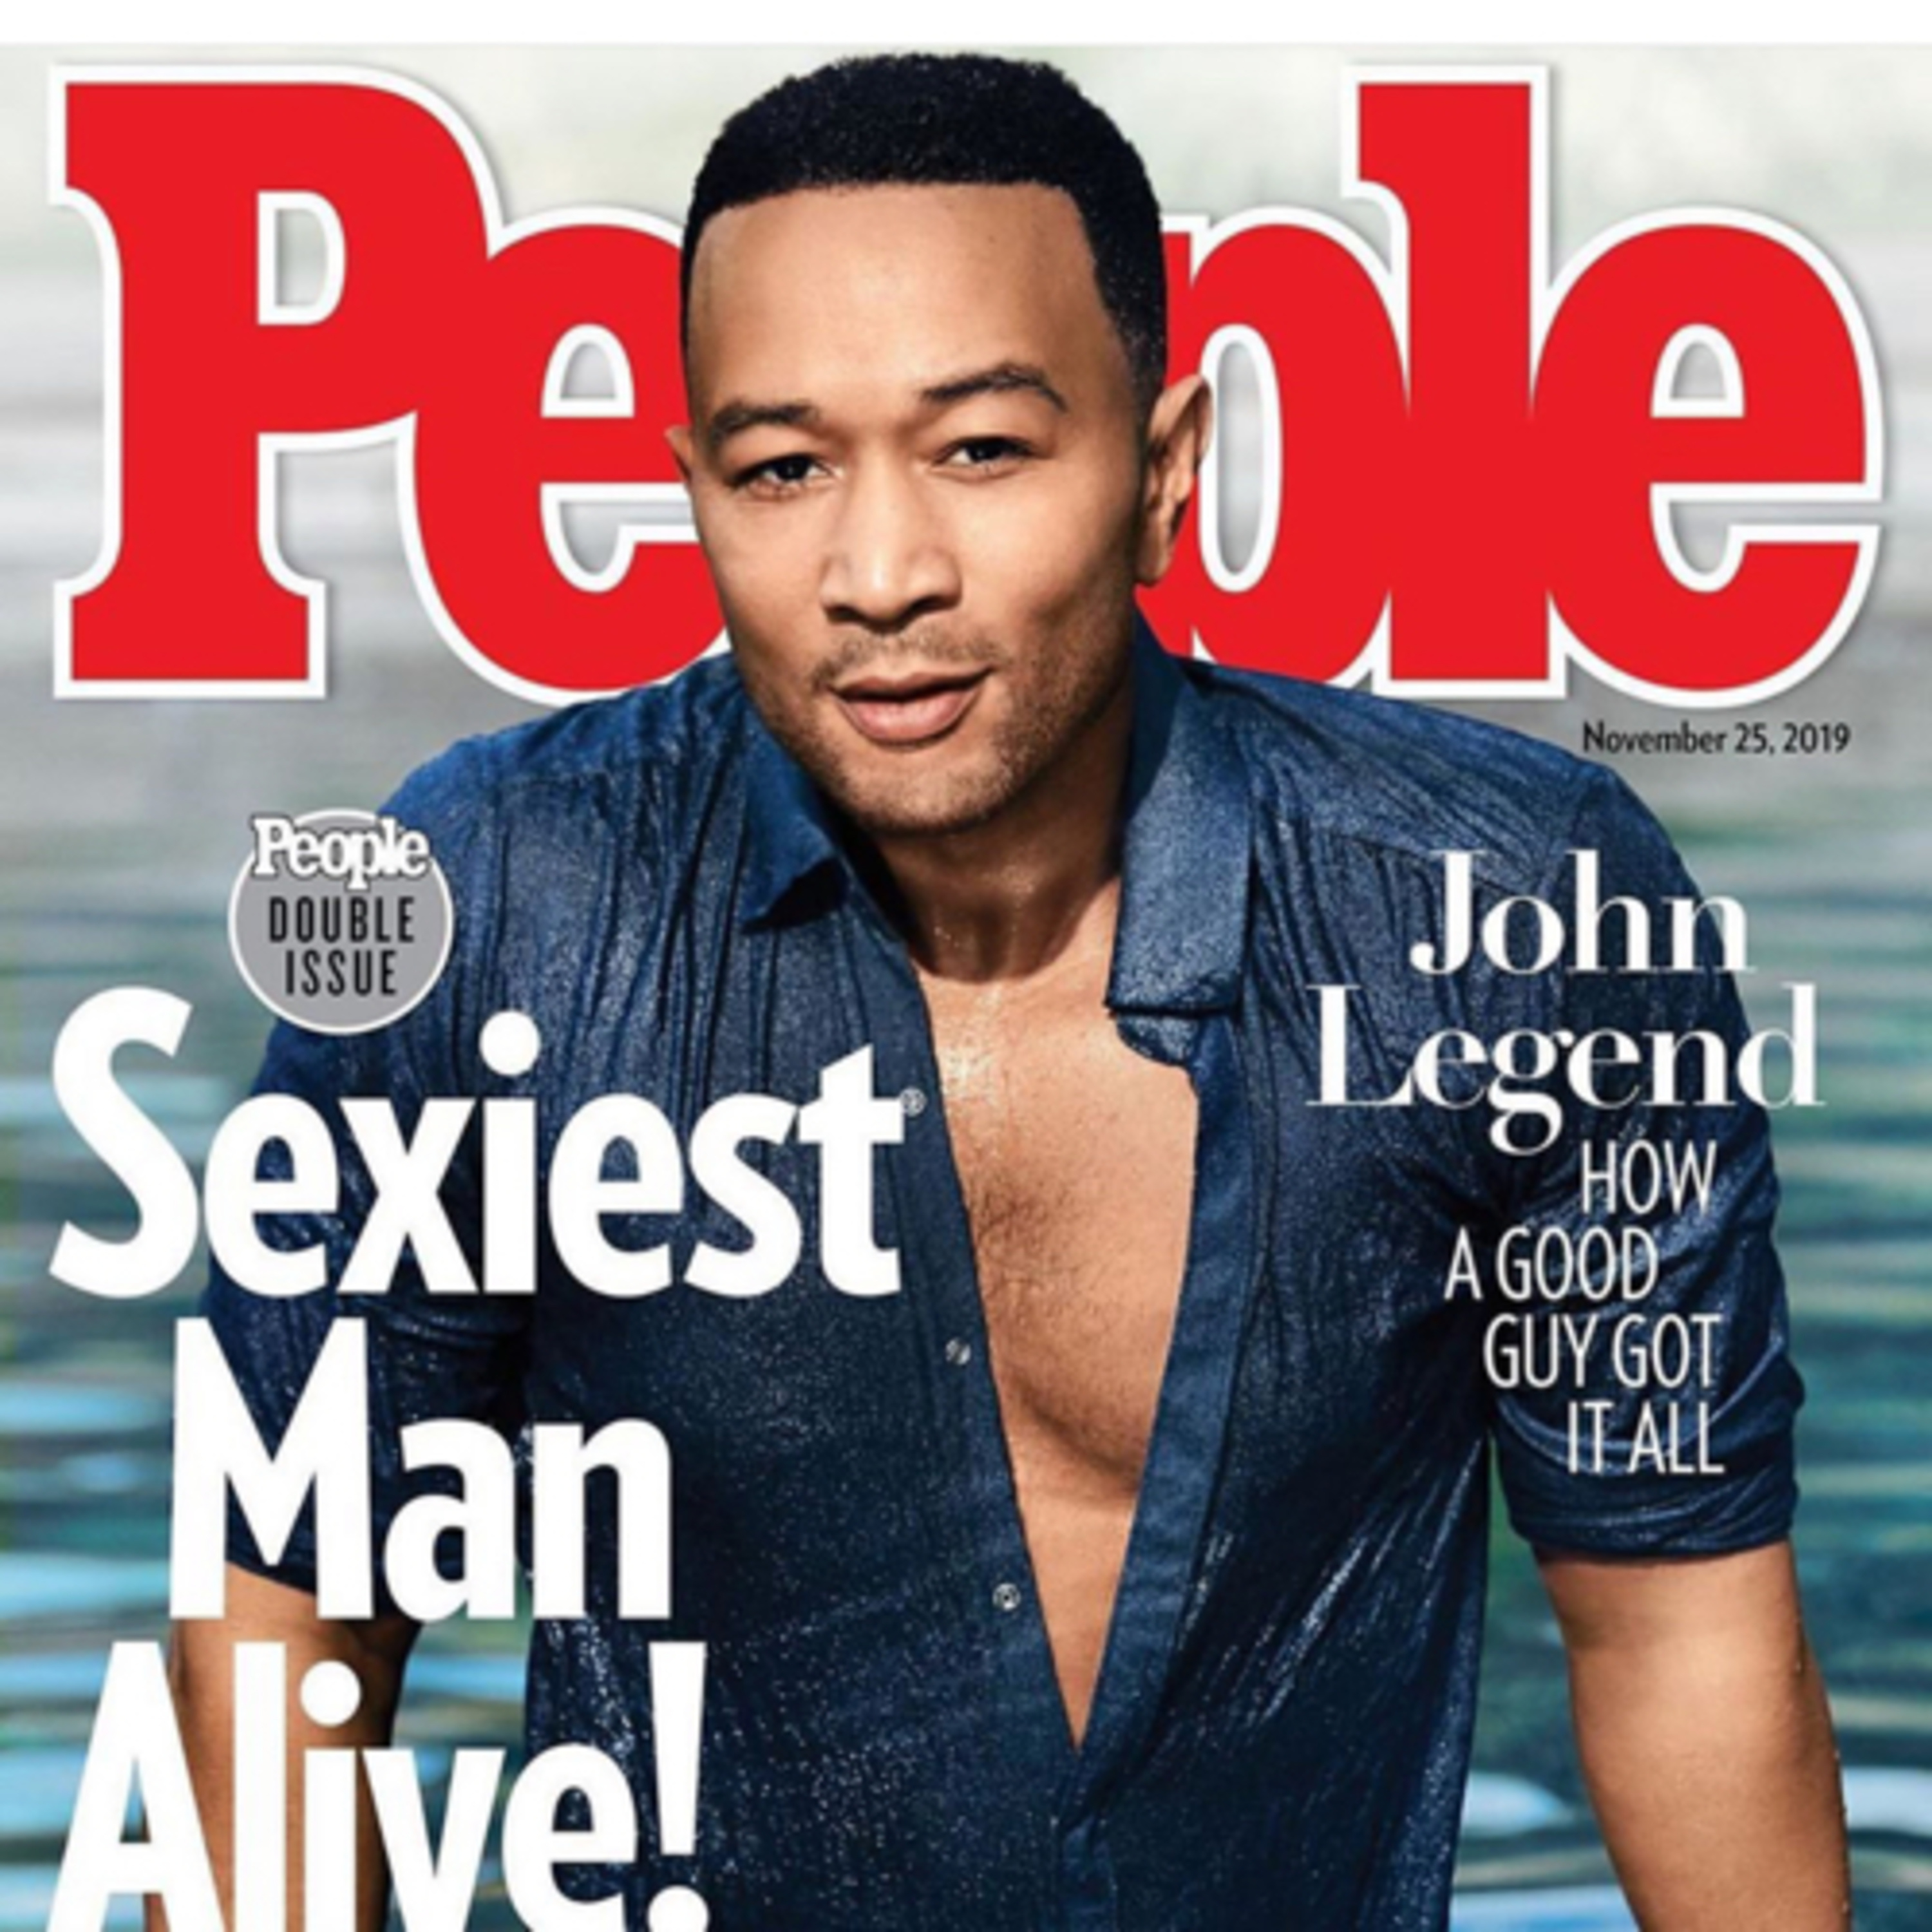 People's 2019 Sexiest Man of the Year is John Legend!